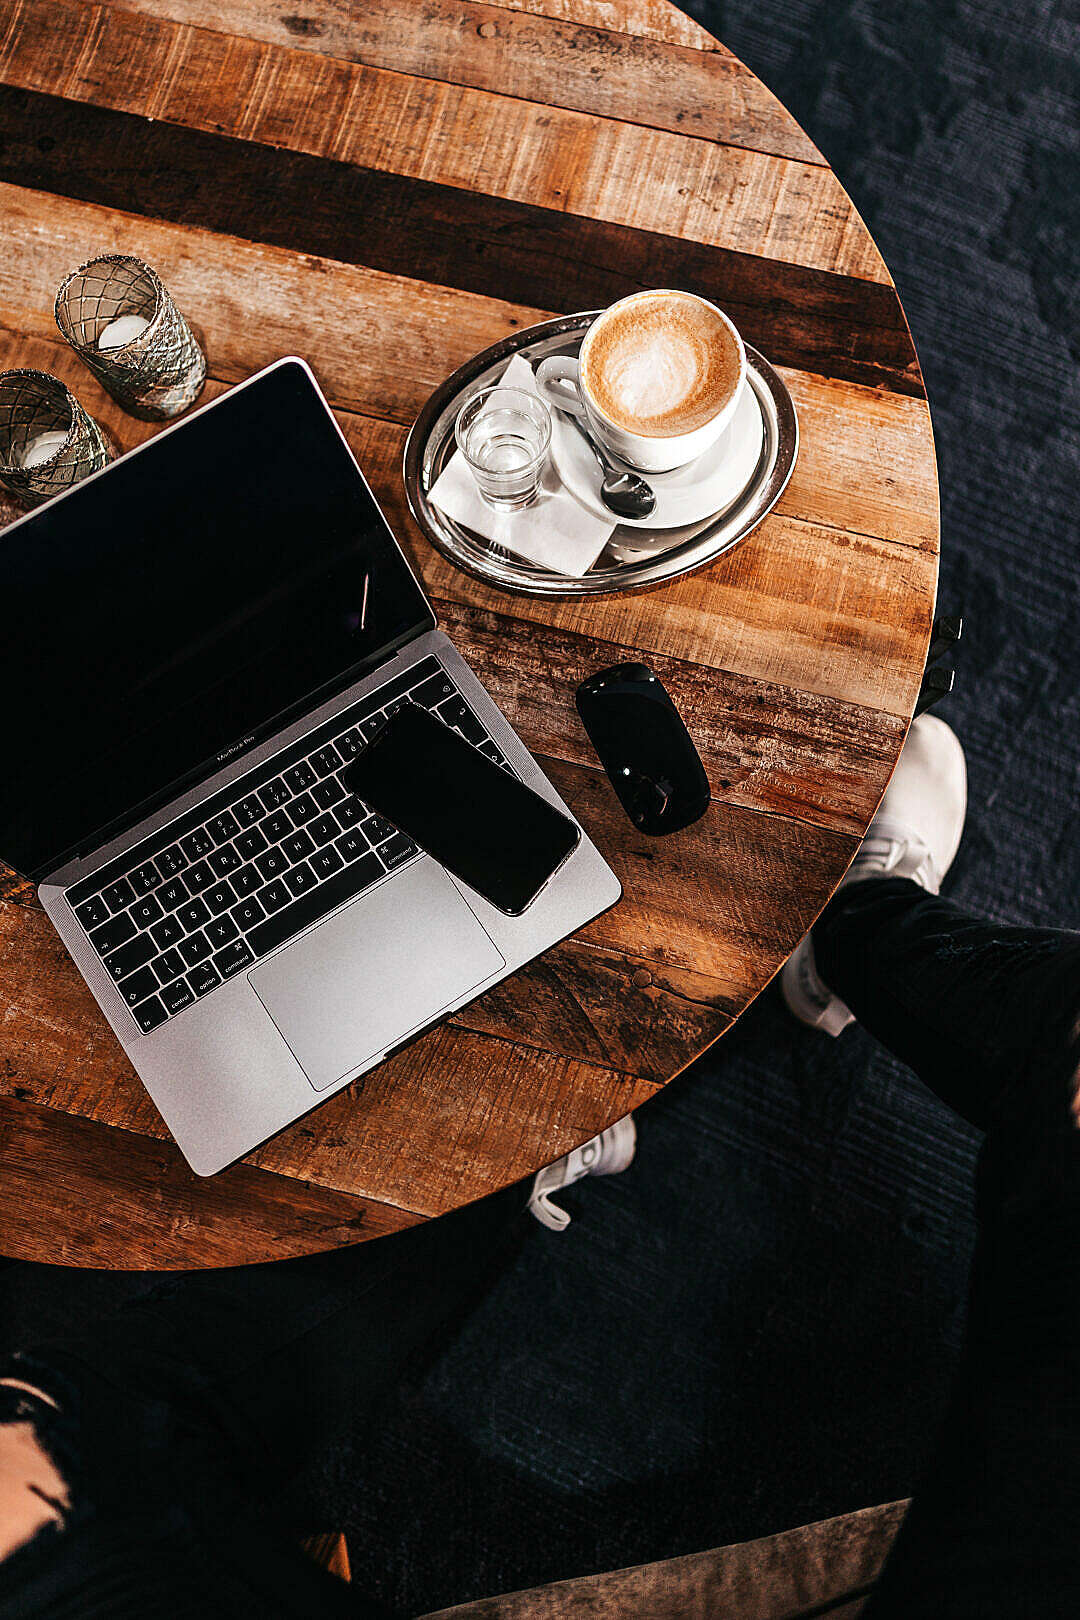 Download Work from a Cafe FREE Stock Photo